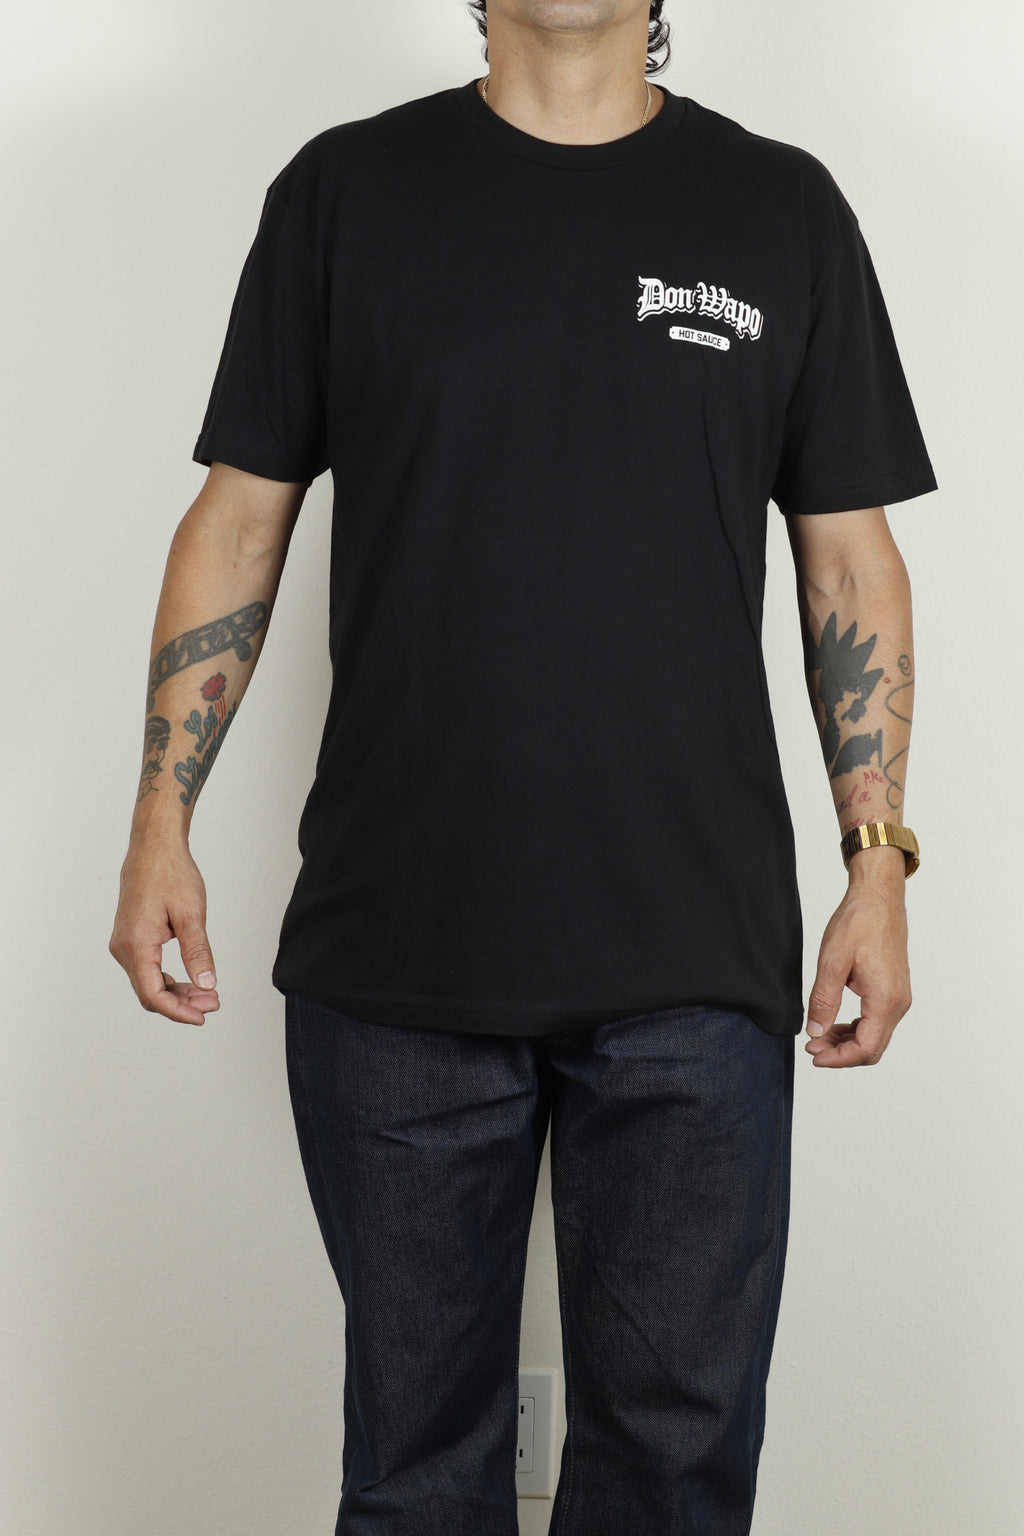 Mens OG Don Wapo Back Logo Tee Black